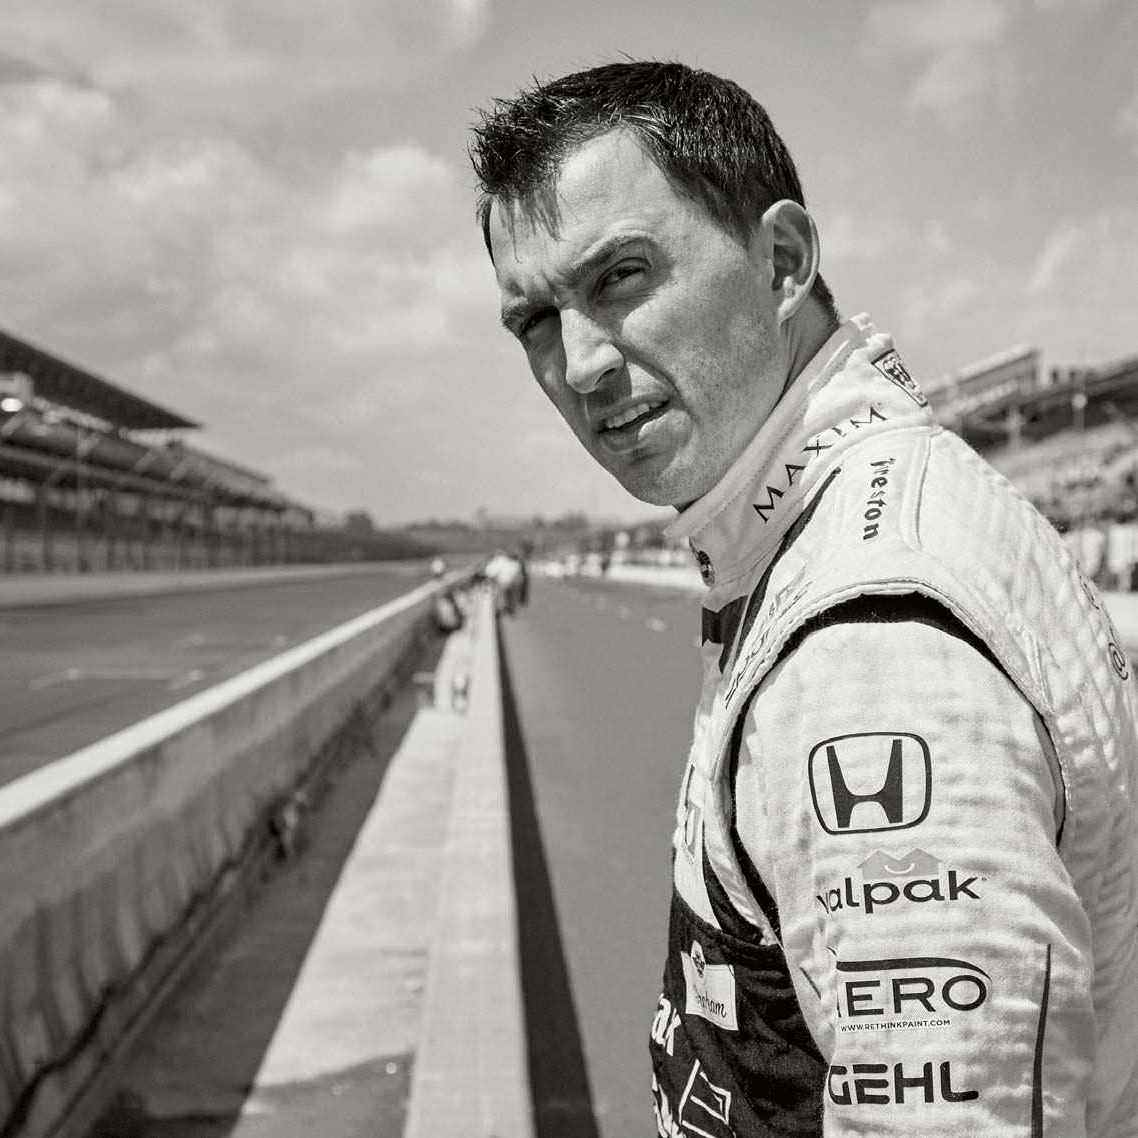 IndyCar scion Graham Rahal Turns Into The Next Lap of His Career